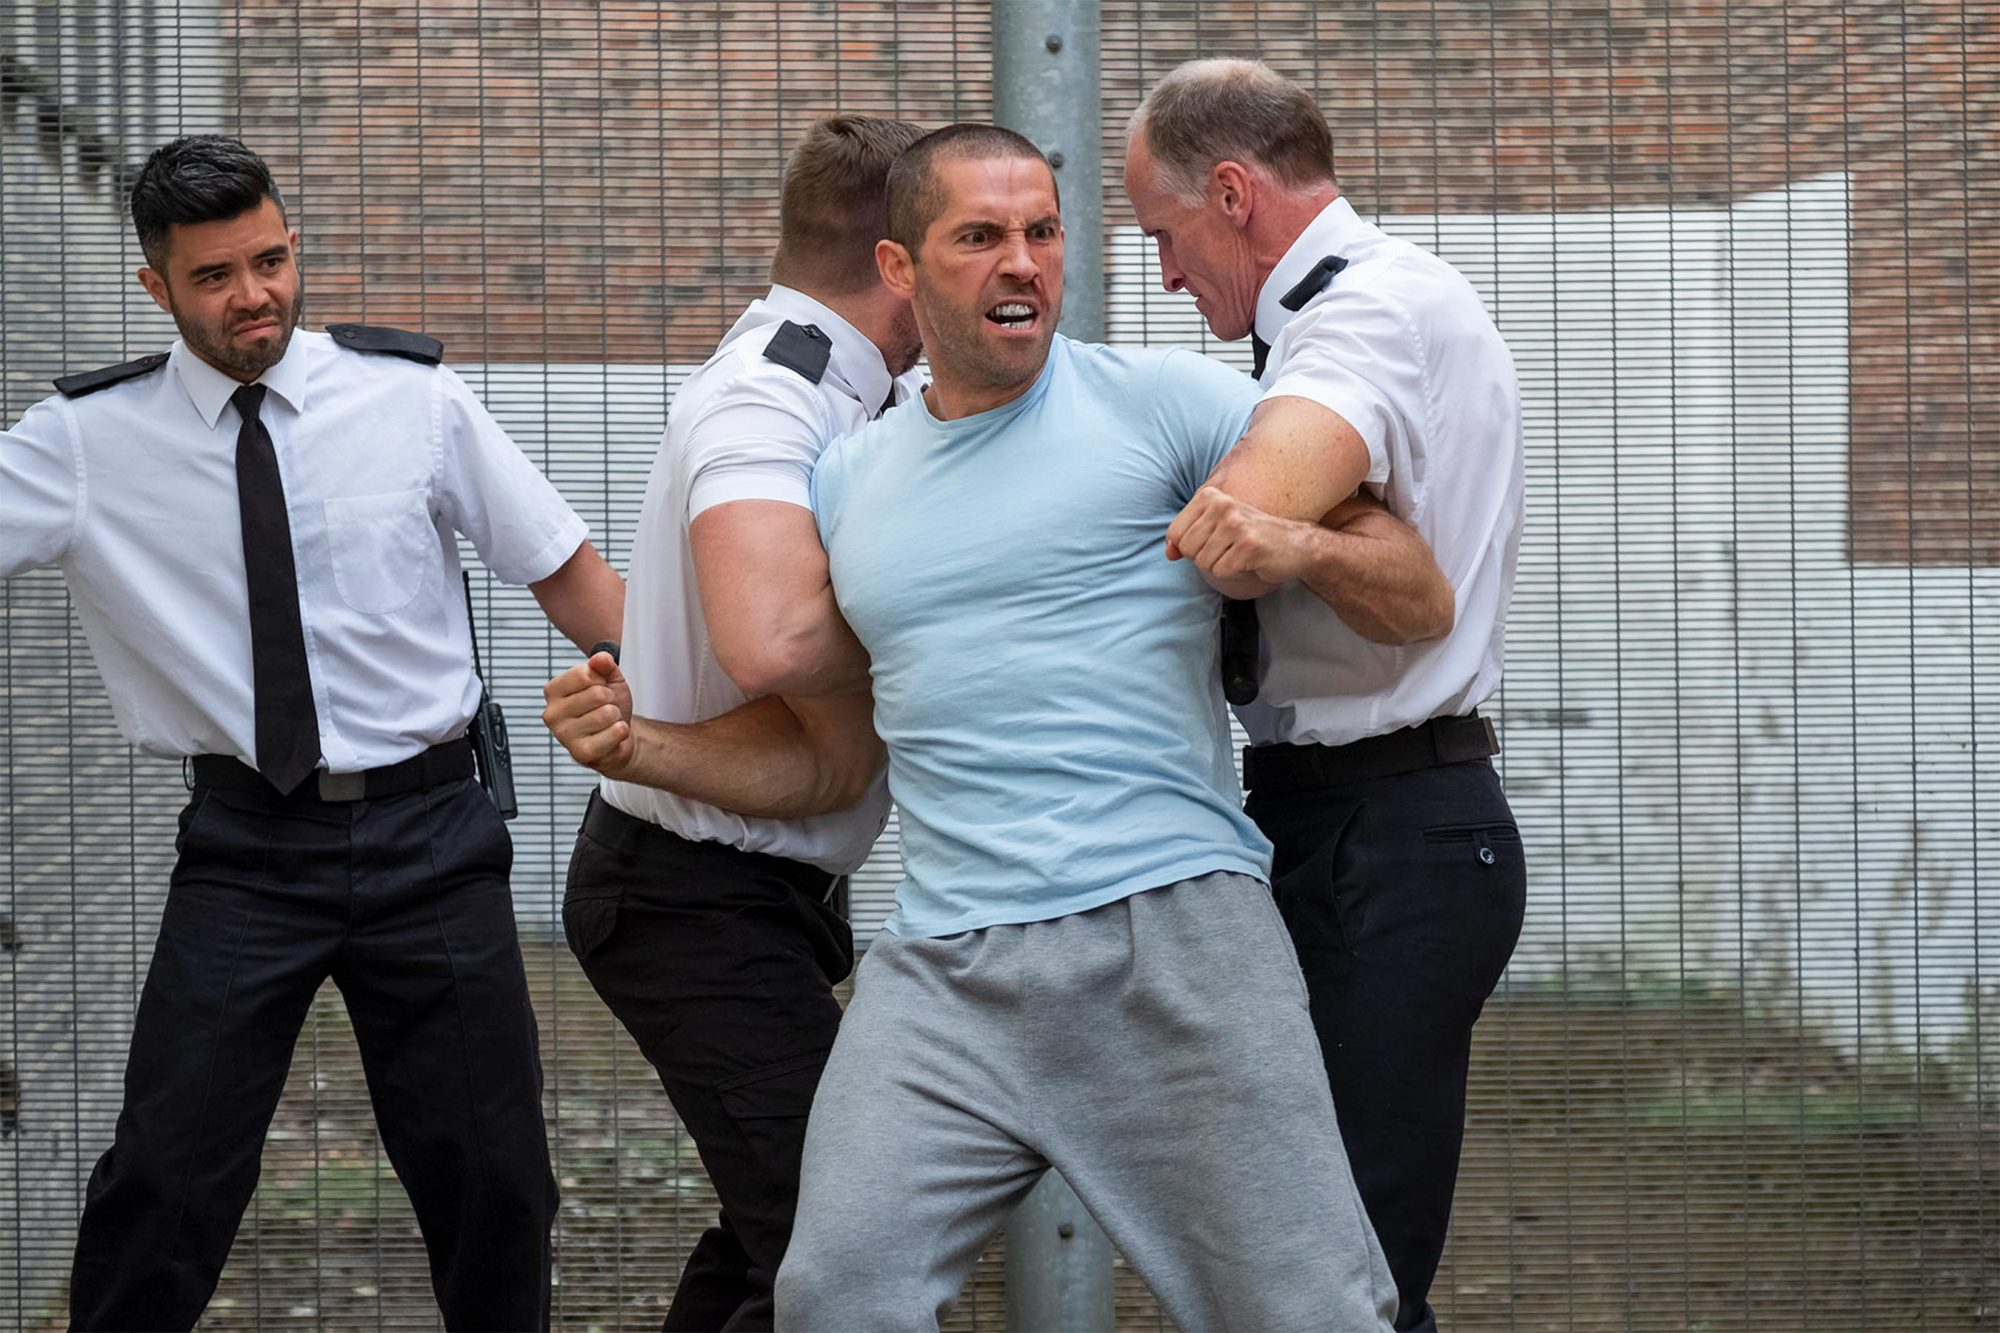 Avengement (2019) Scott Adkins CR: Samuel Goldwyn Films